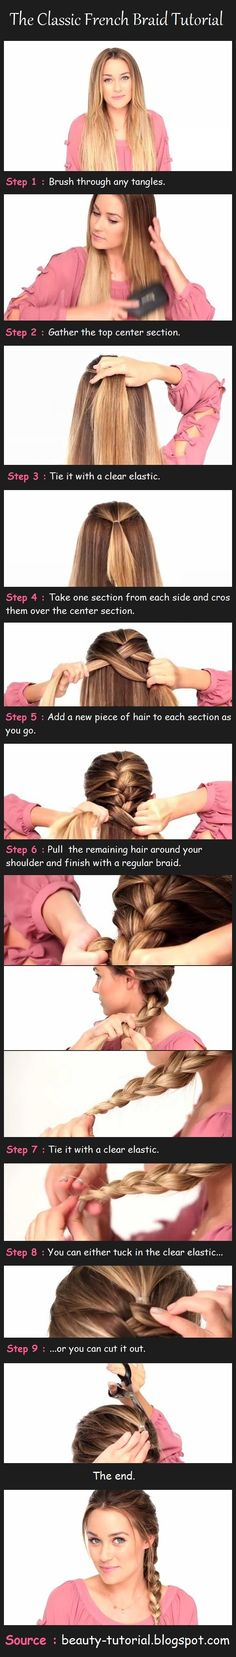 The Classic French Braid Tutorial | Beauty Tutorials  i always for get the rubberband..